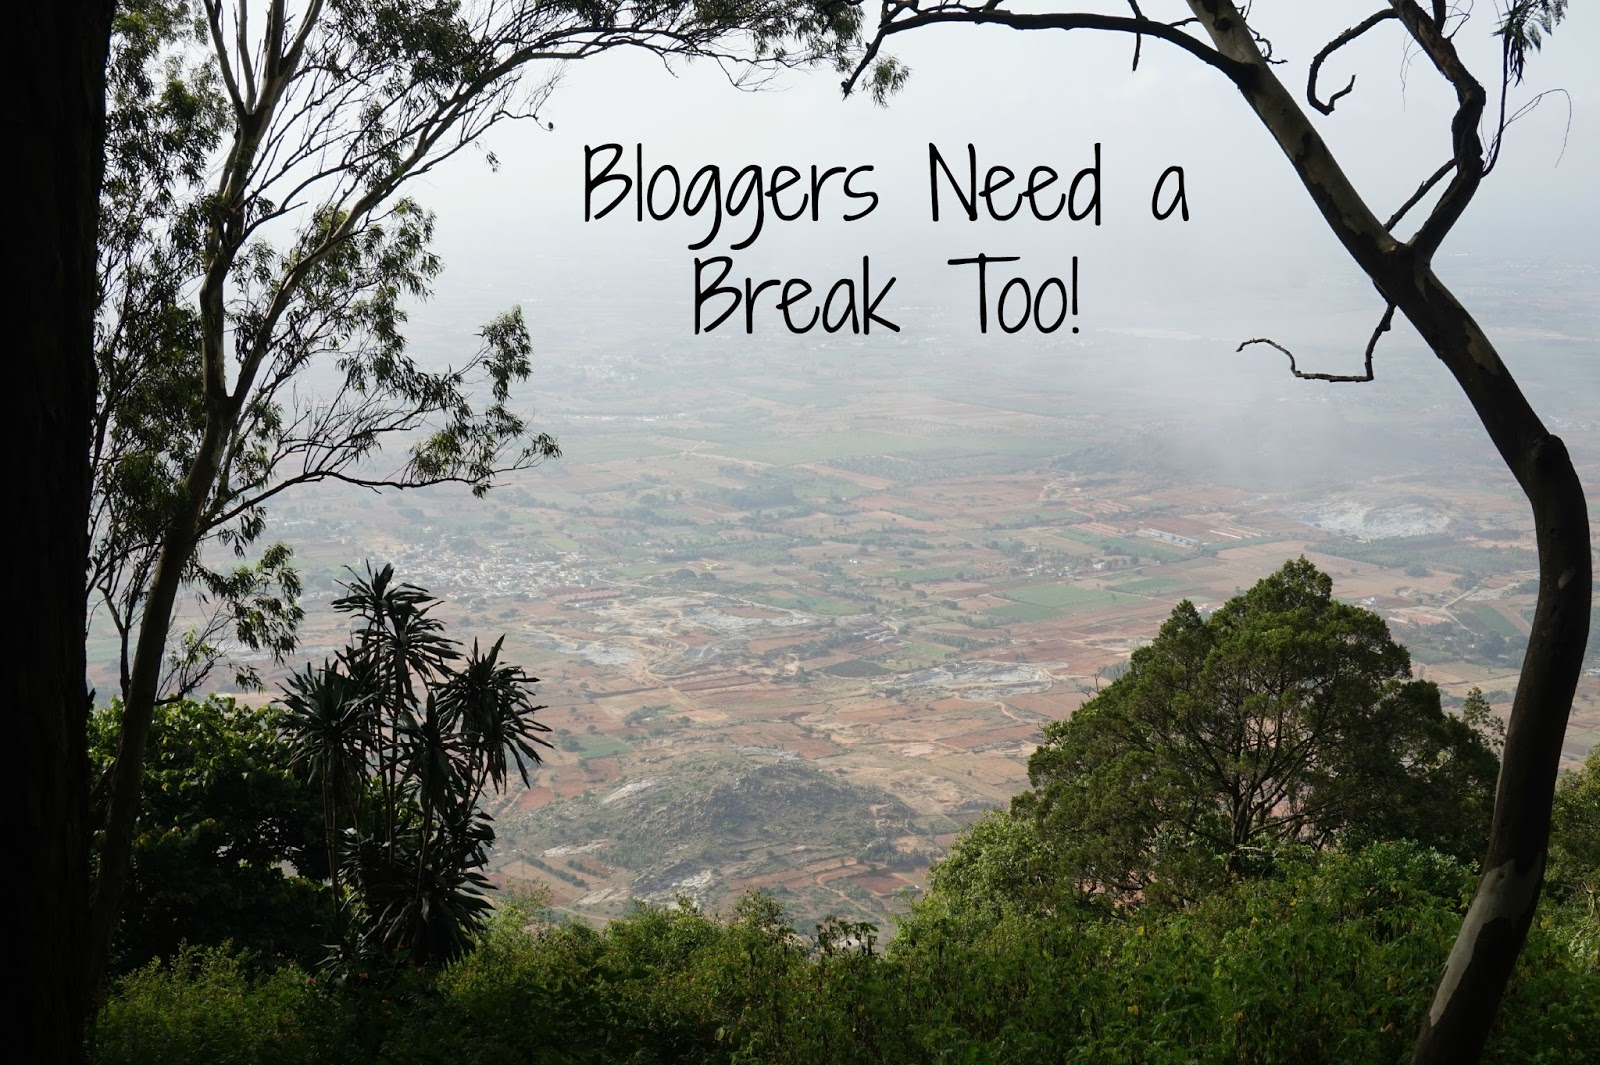 Bloggers Need a Break too vacation